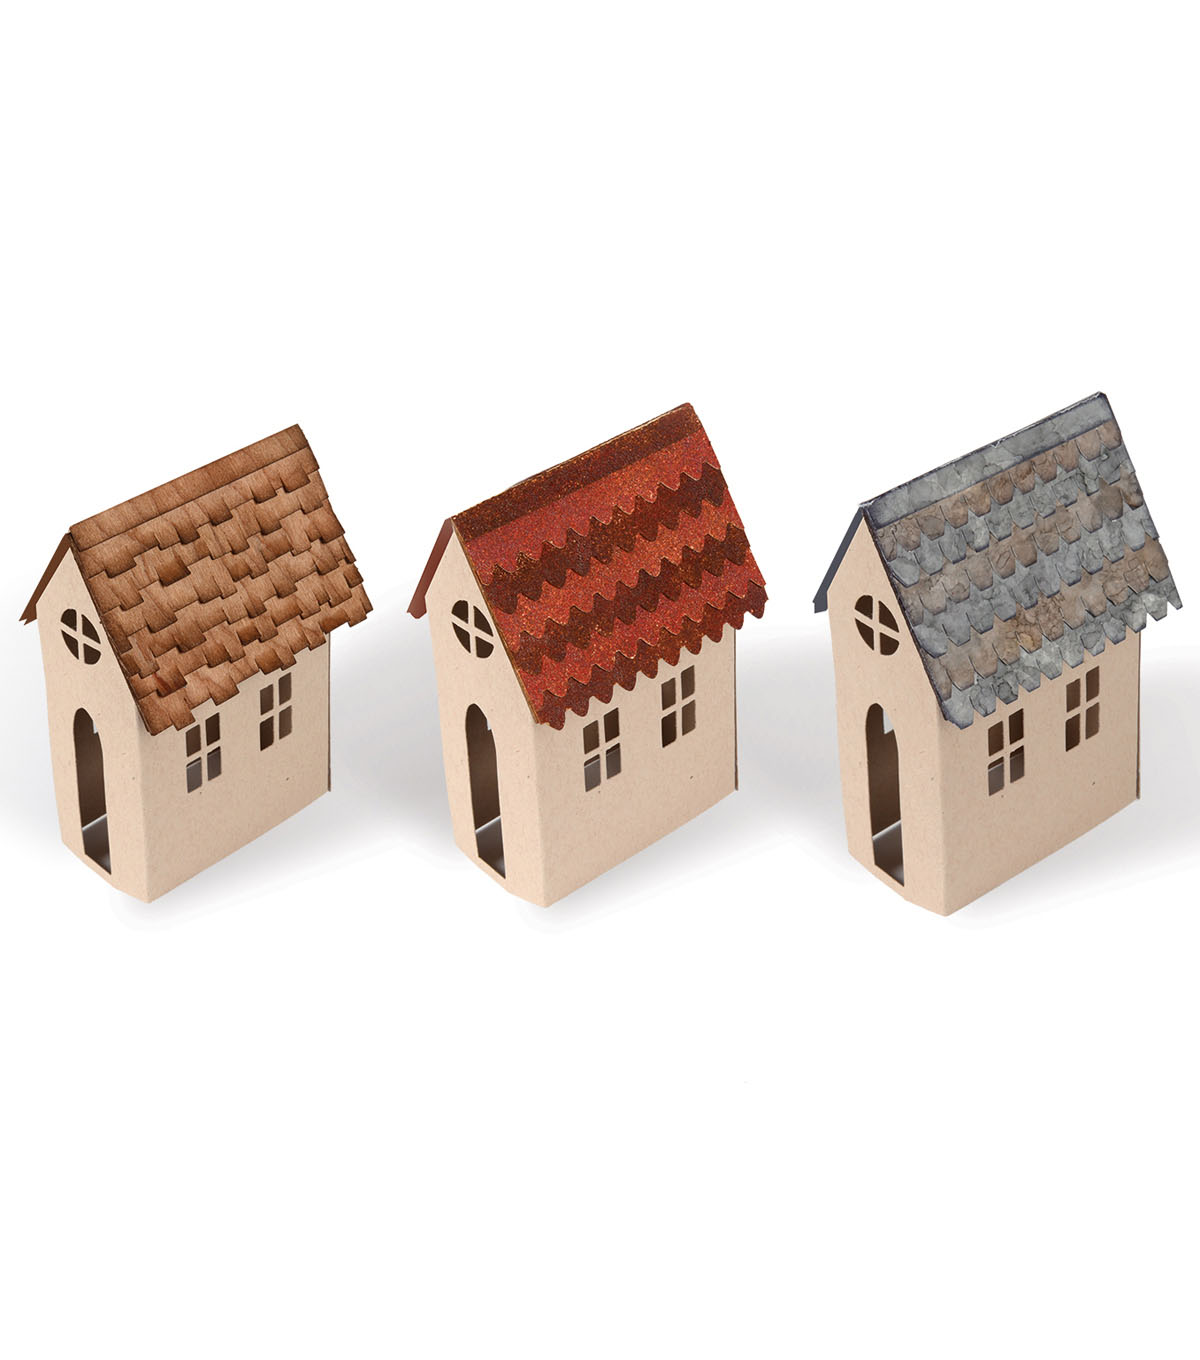 Sizzix Bigz Tim Holtz Alterations Die-Village Rooftops